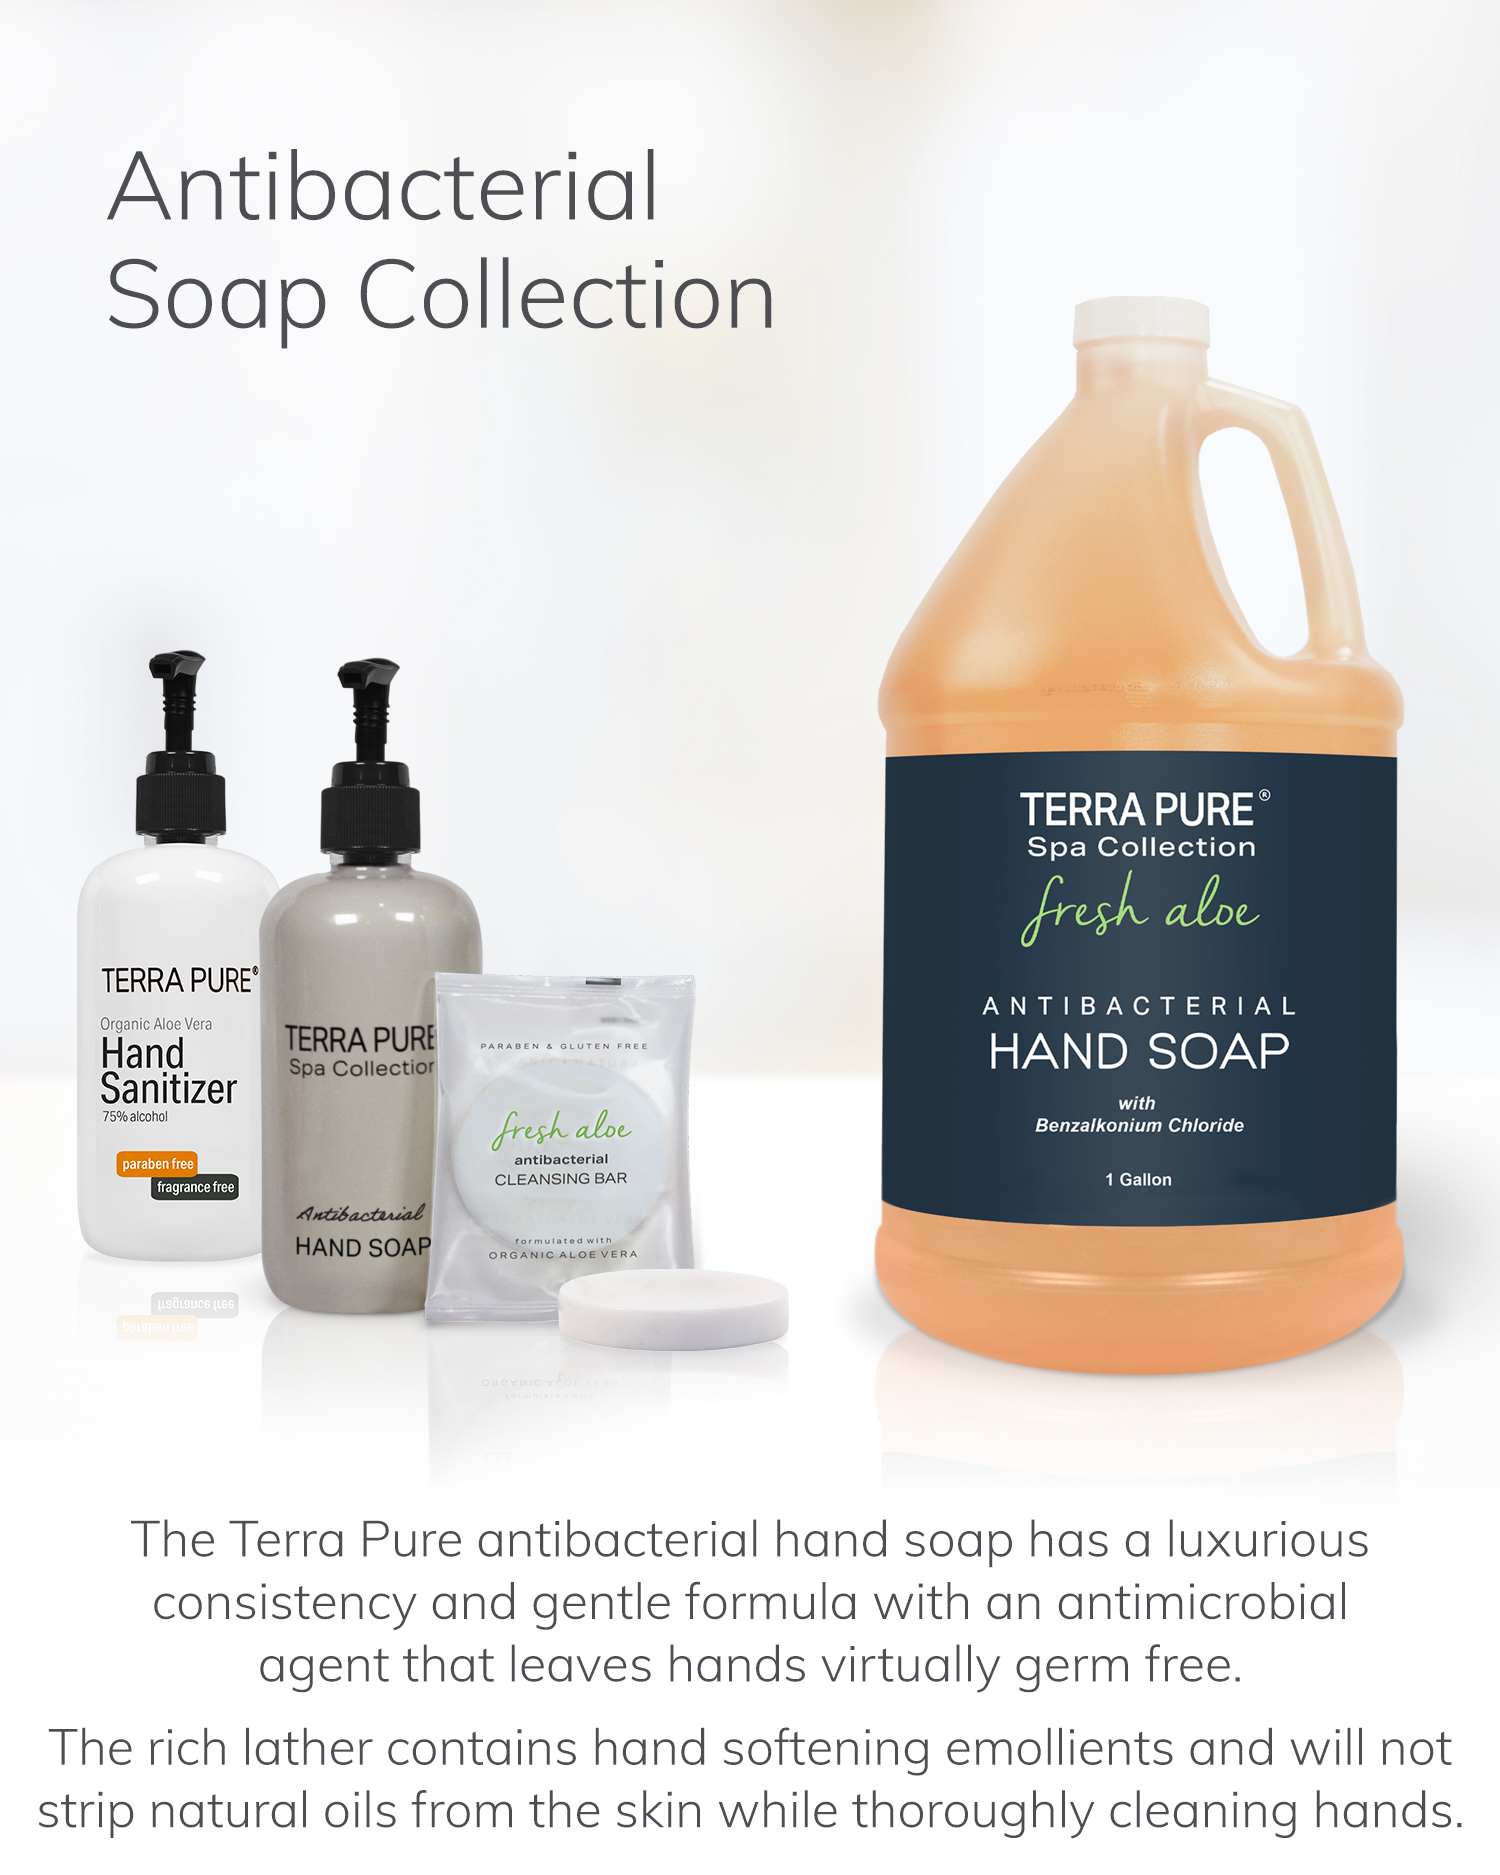 Terra Pure Antibacterial Soap Collection